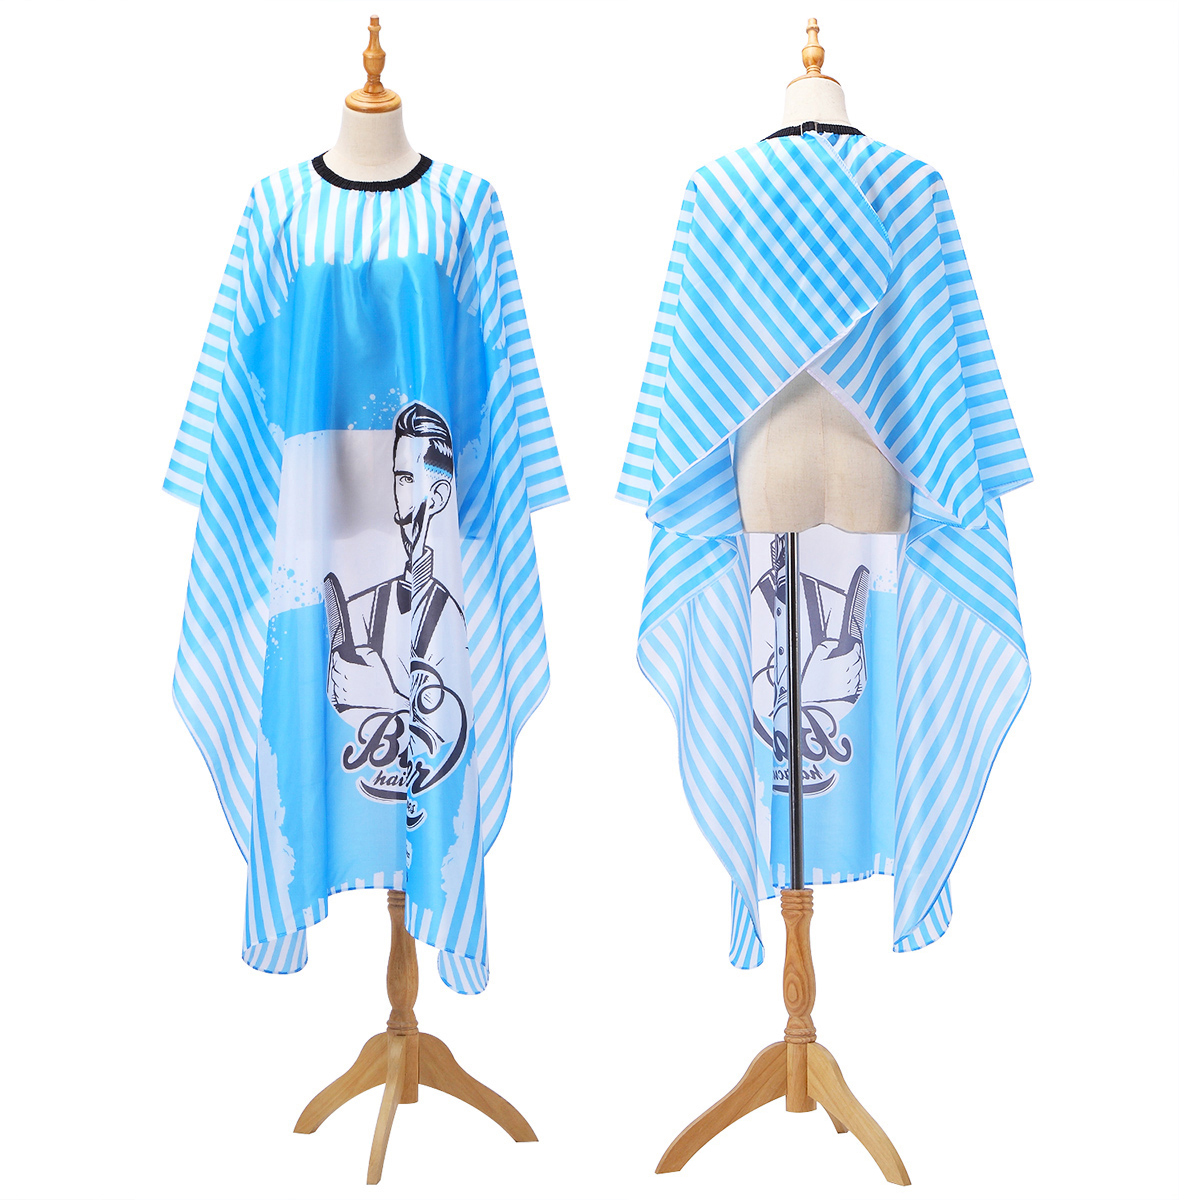 2019 Haircut Hairdressing Barber Cloth Blue Chambray Apron Polyester Hair Styling Design Supplies Breathable Salon Barber Gown